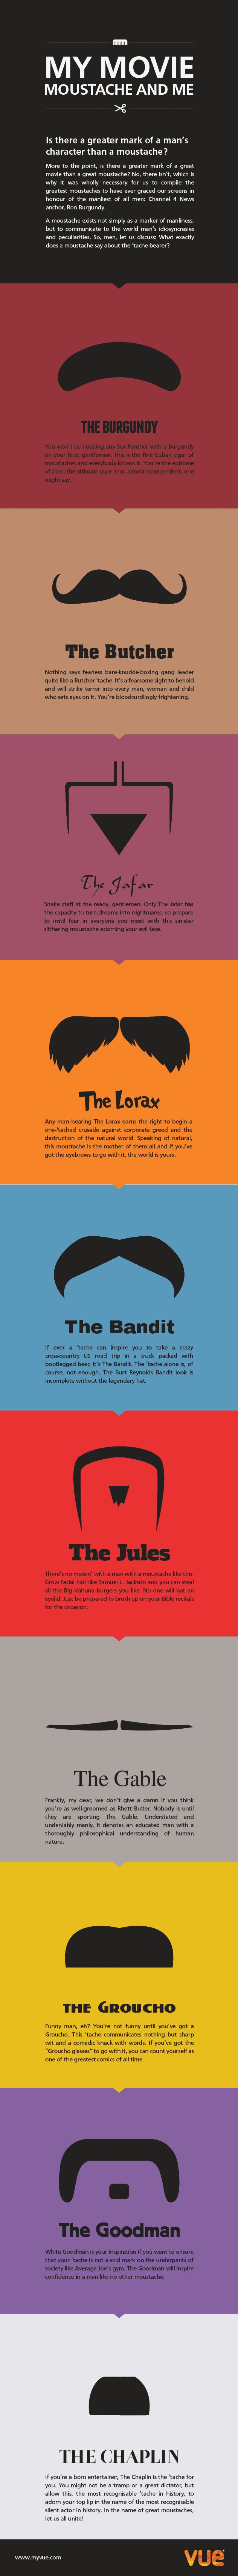 My Movie Moustache and Me Infographic